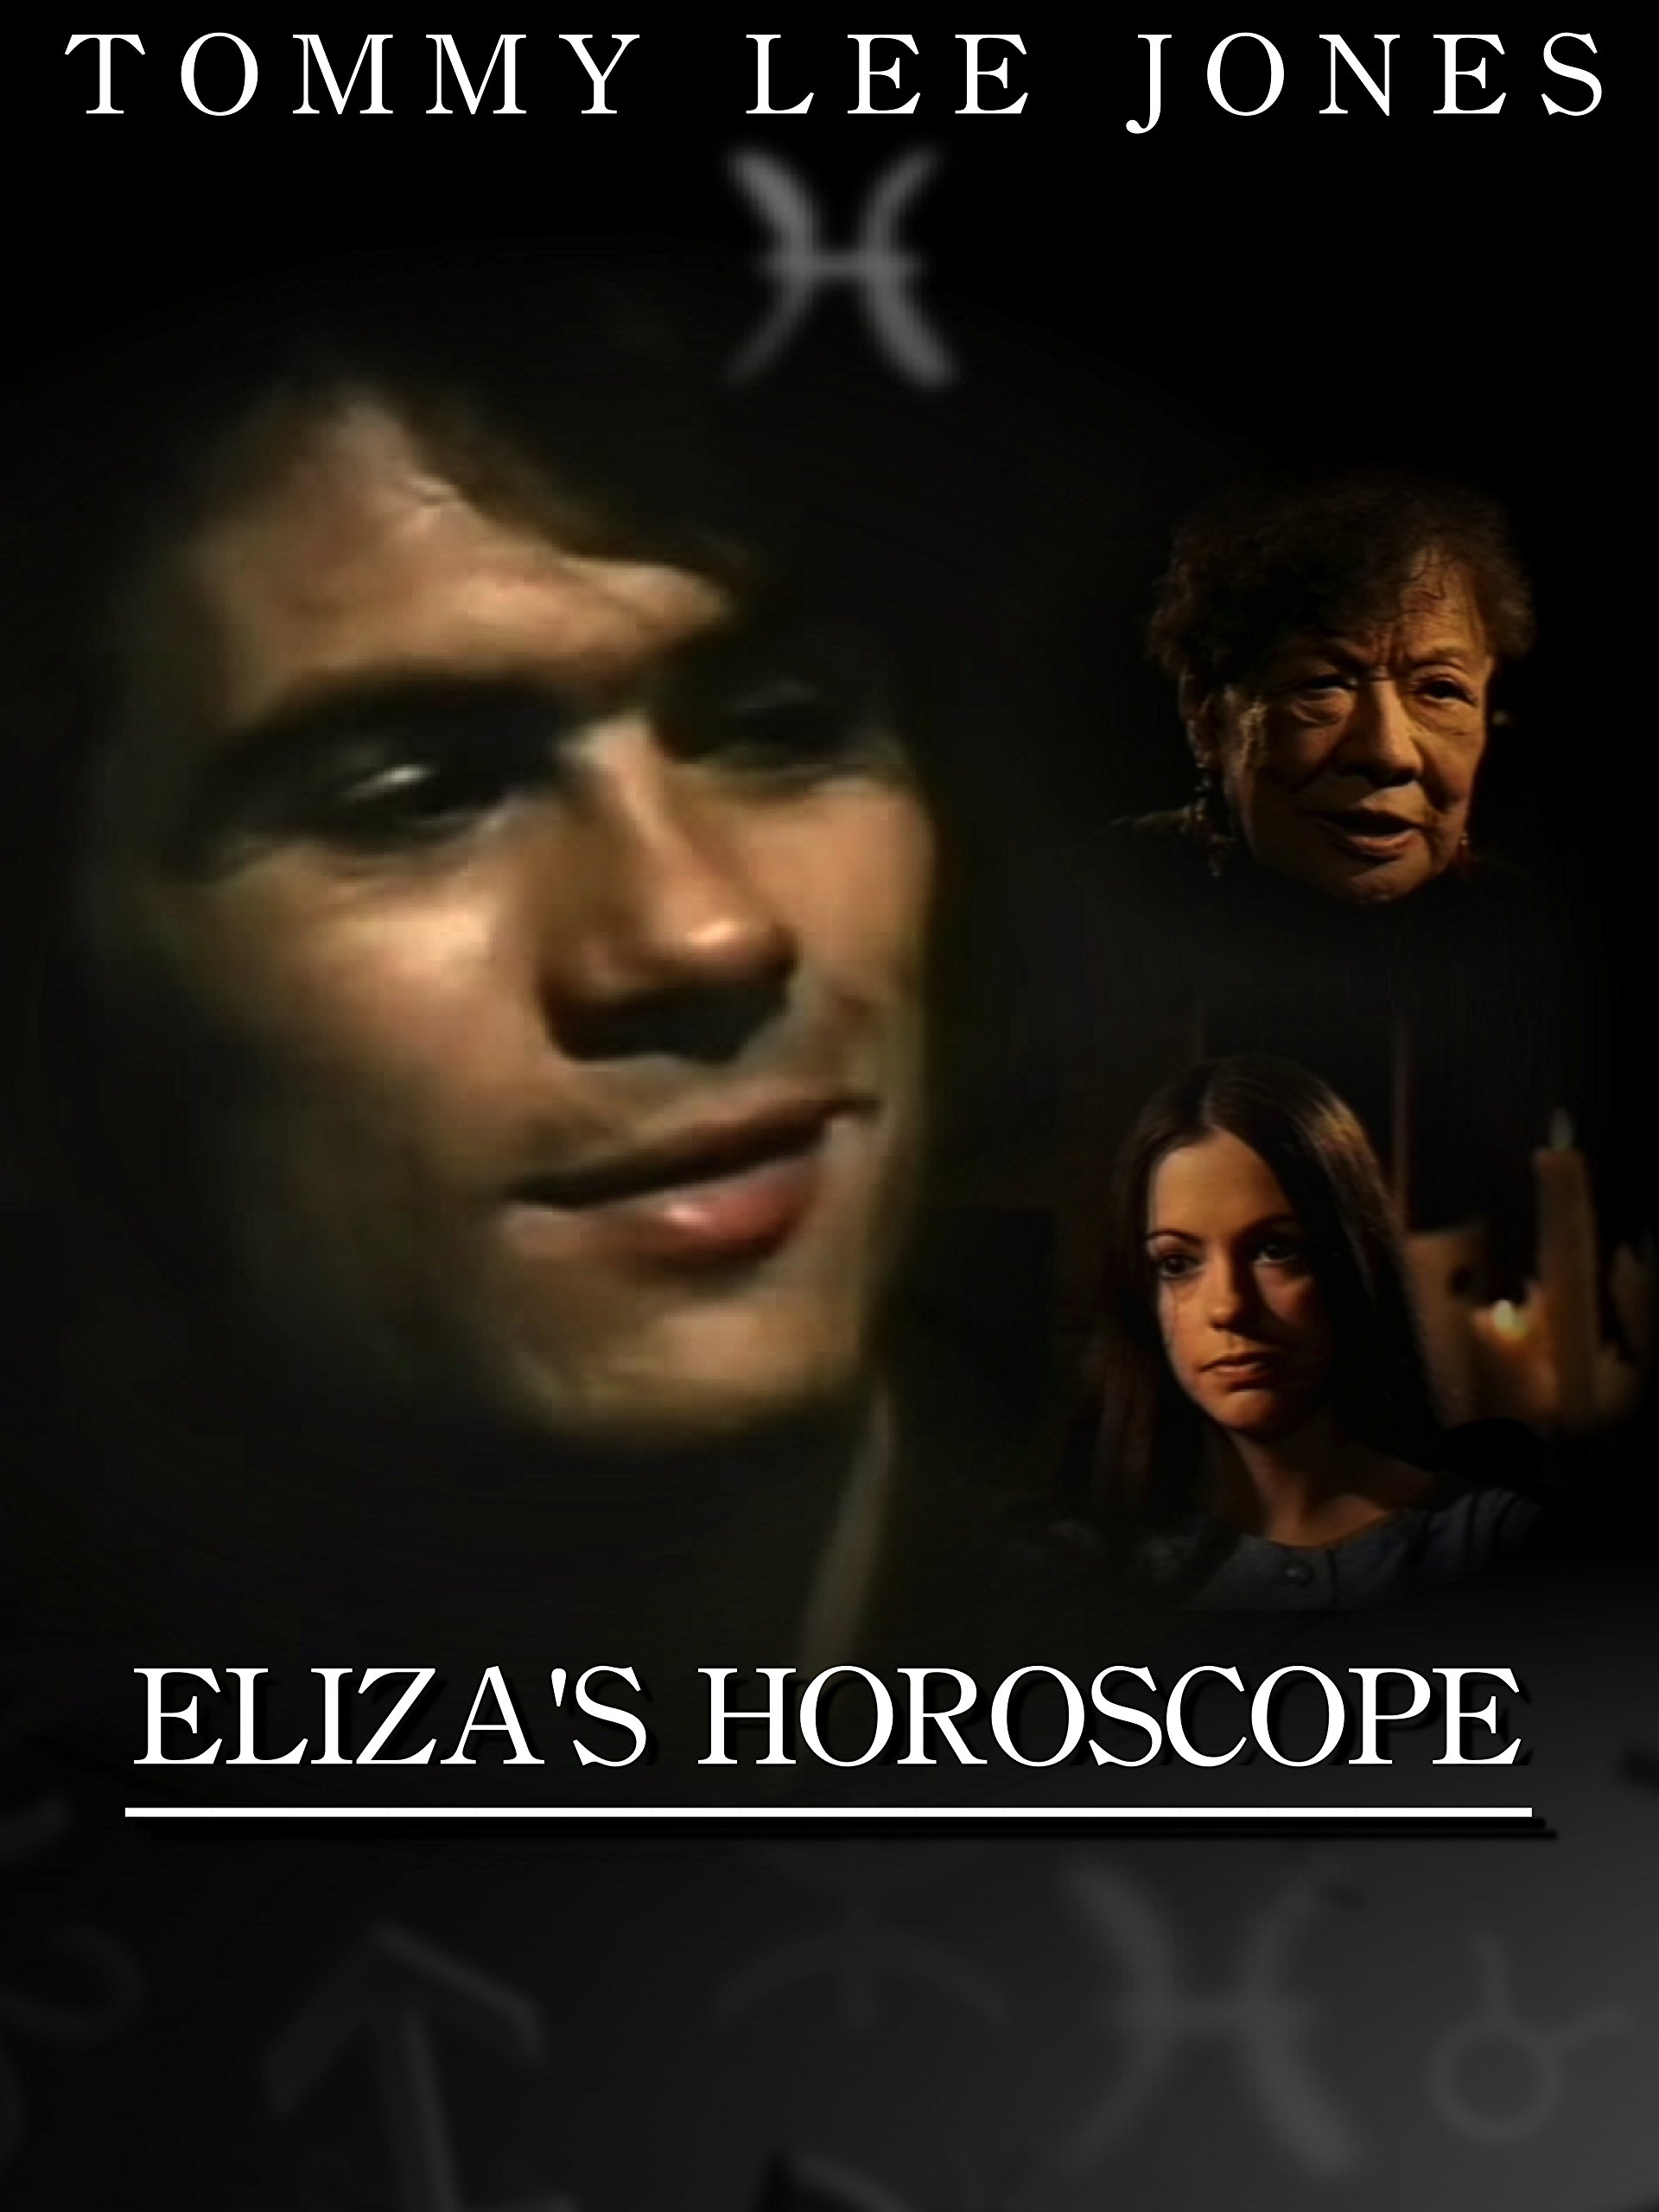 Eliza's Horoscope